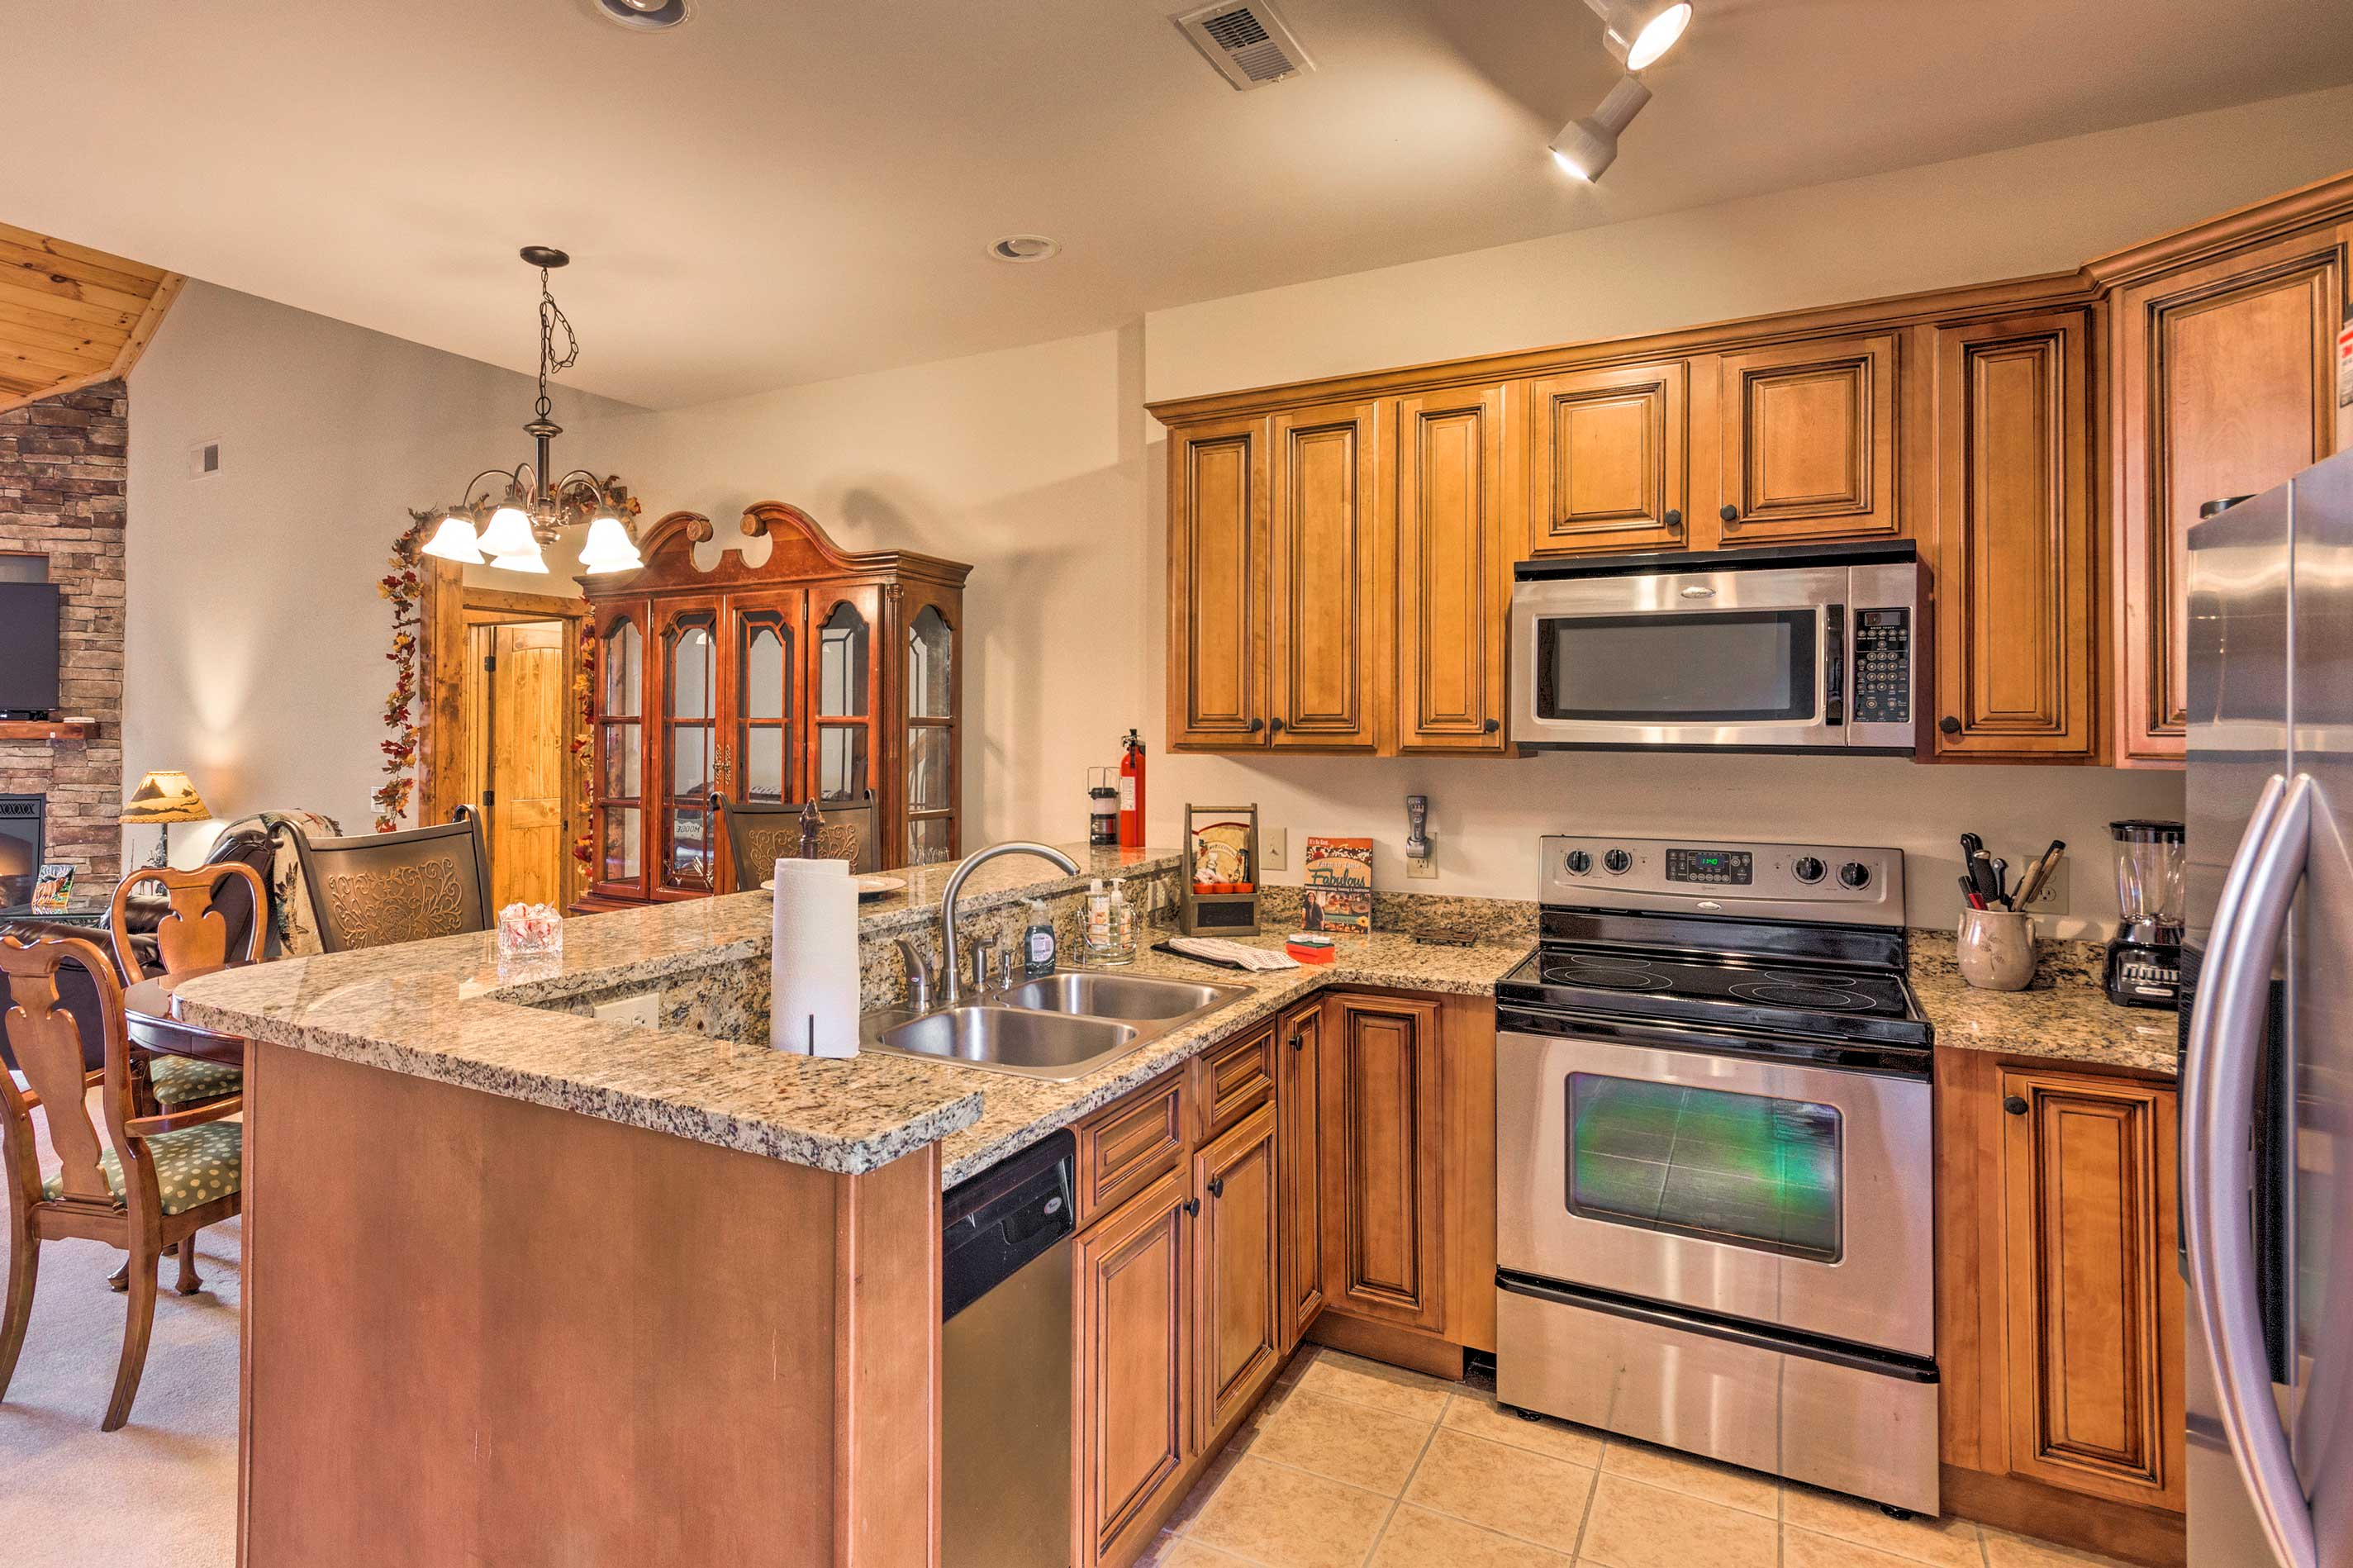 Fully equipped, this kitchen has everything you need to make all your favorites!